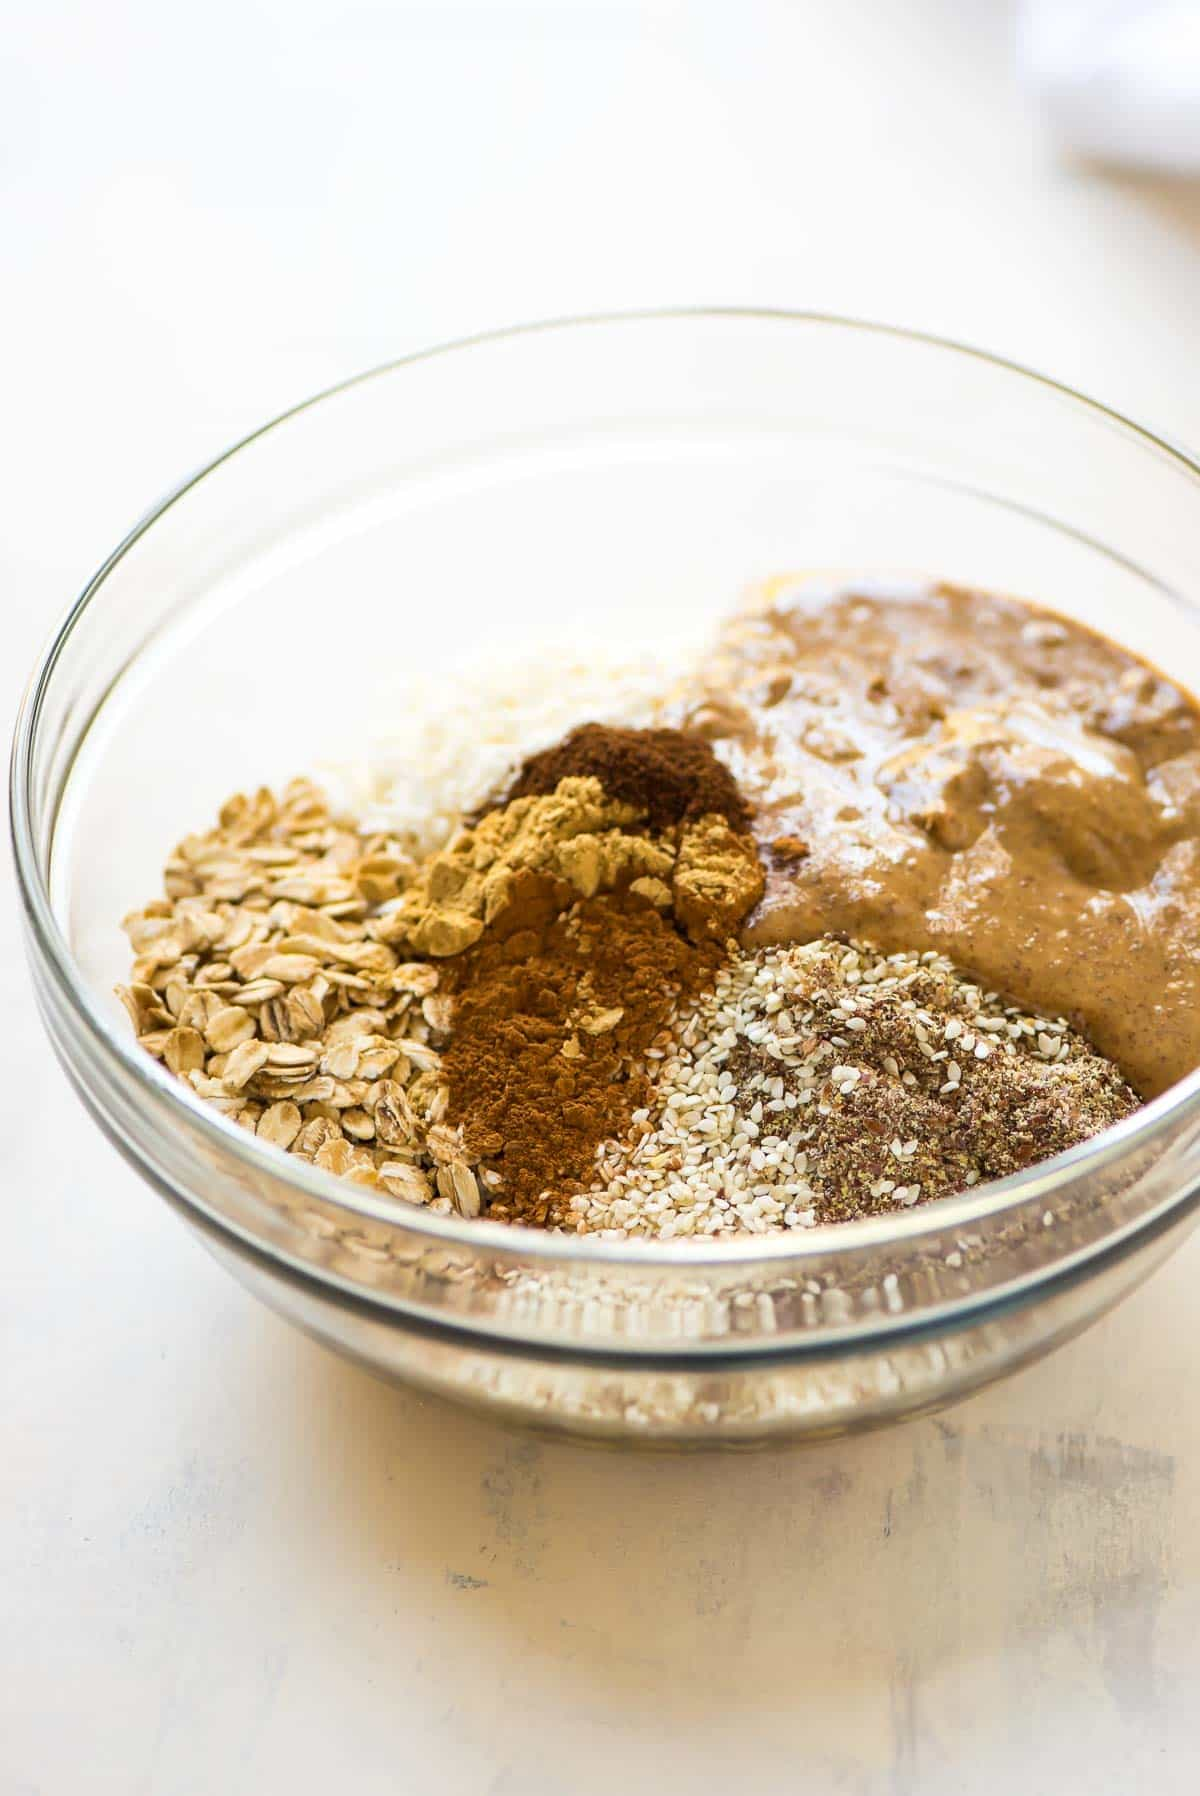 No Bake Protein Balls – Spiced with ginger and good for your skin! Raw, vegan, and gluten free. Recipe at wellplated.com | @wellplated